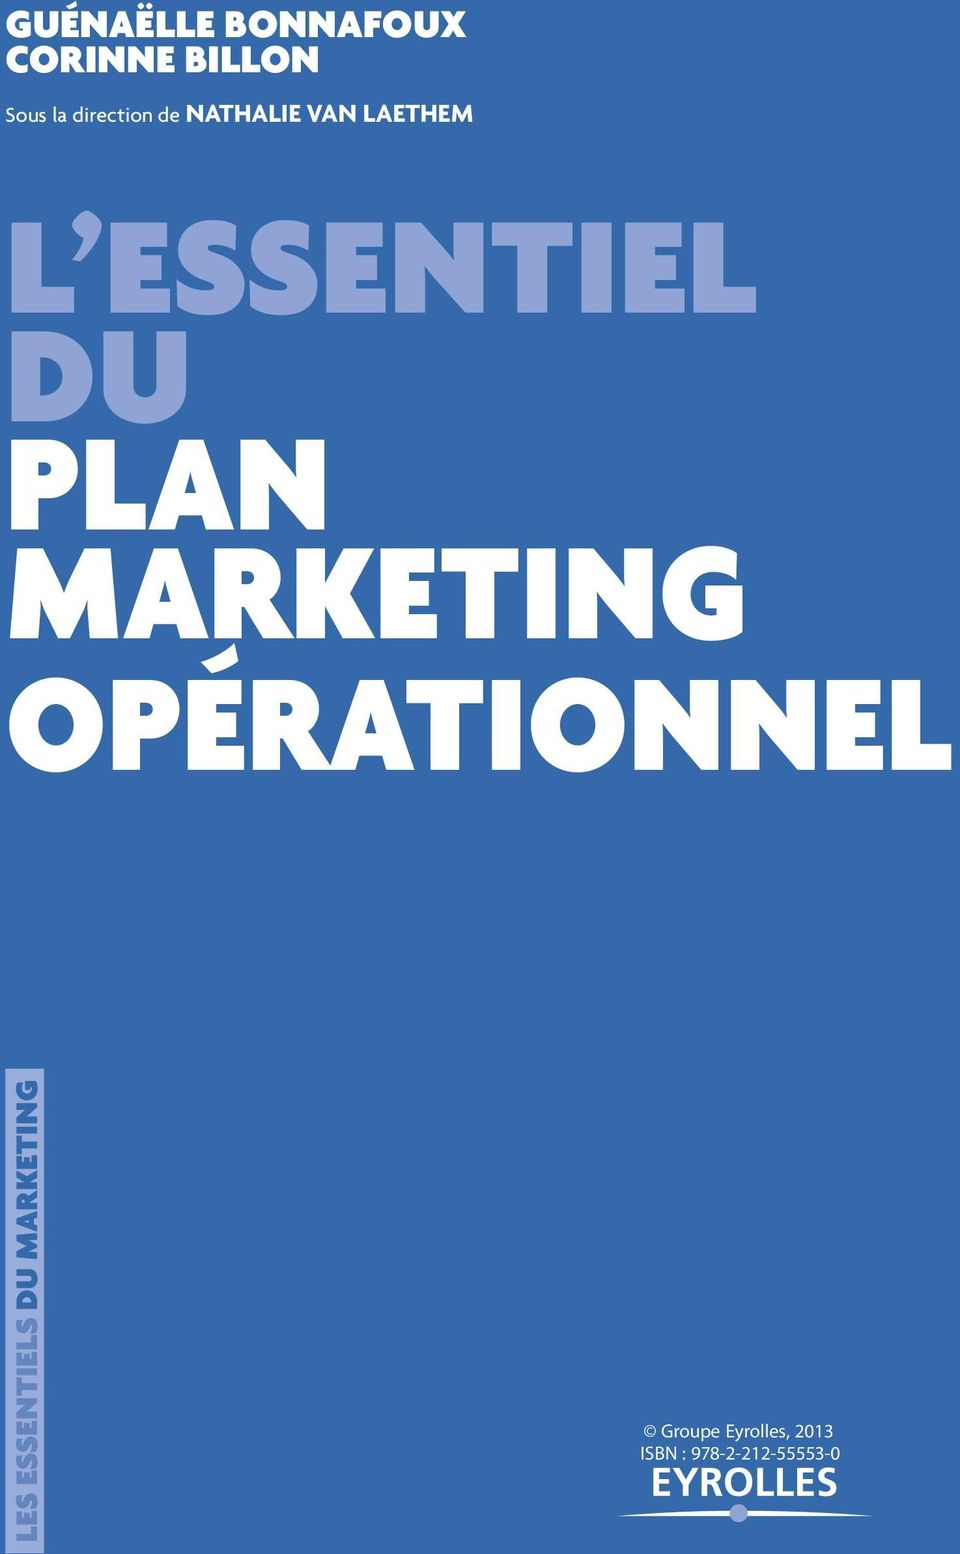 ESSENTIEL DU PLAN MARKETING OPÉRATIONNEL LES